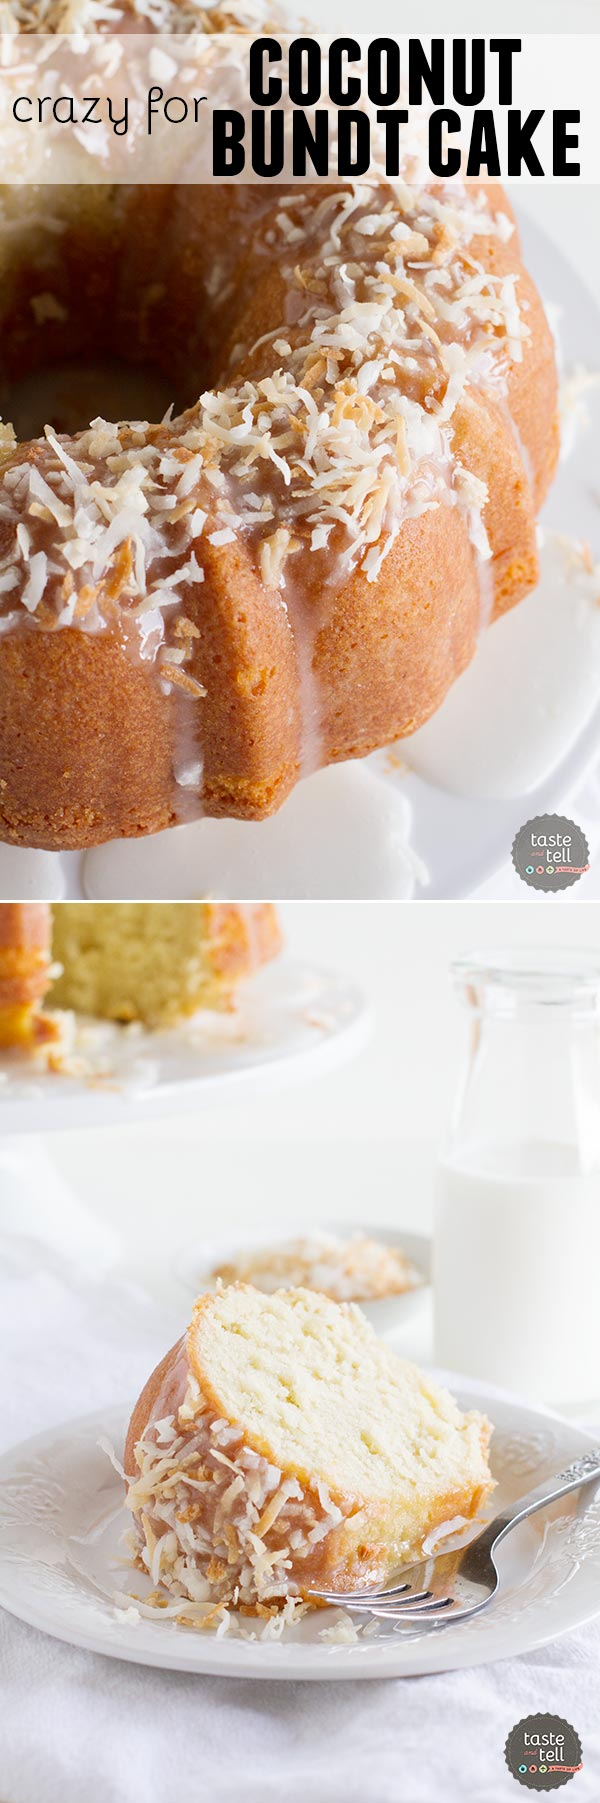 Crazy for Coconut Bundt Cake - the most perfect coconut bundt cake recipe that is flavorful and moist with the perfect amount of coconut flavor.